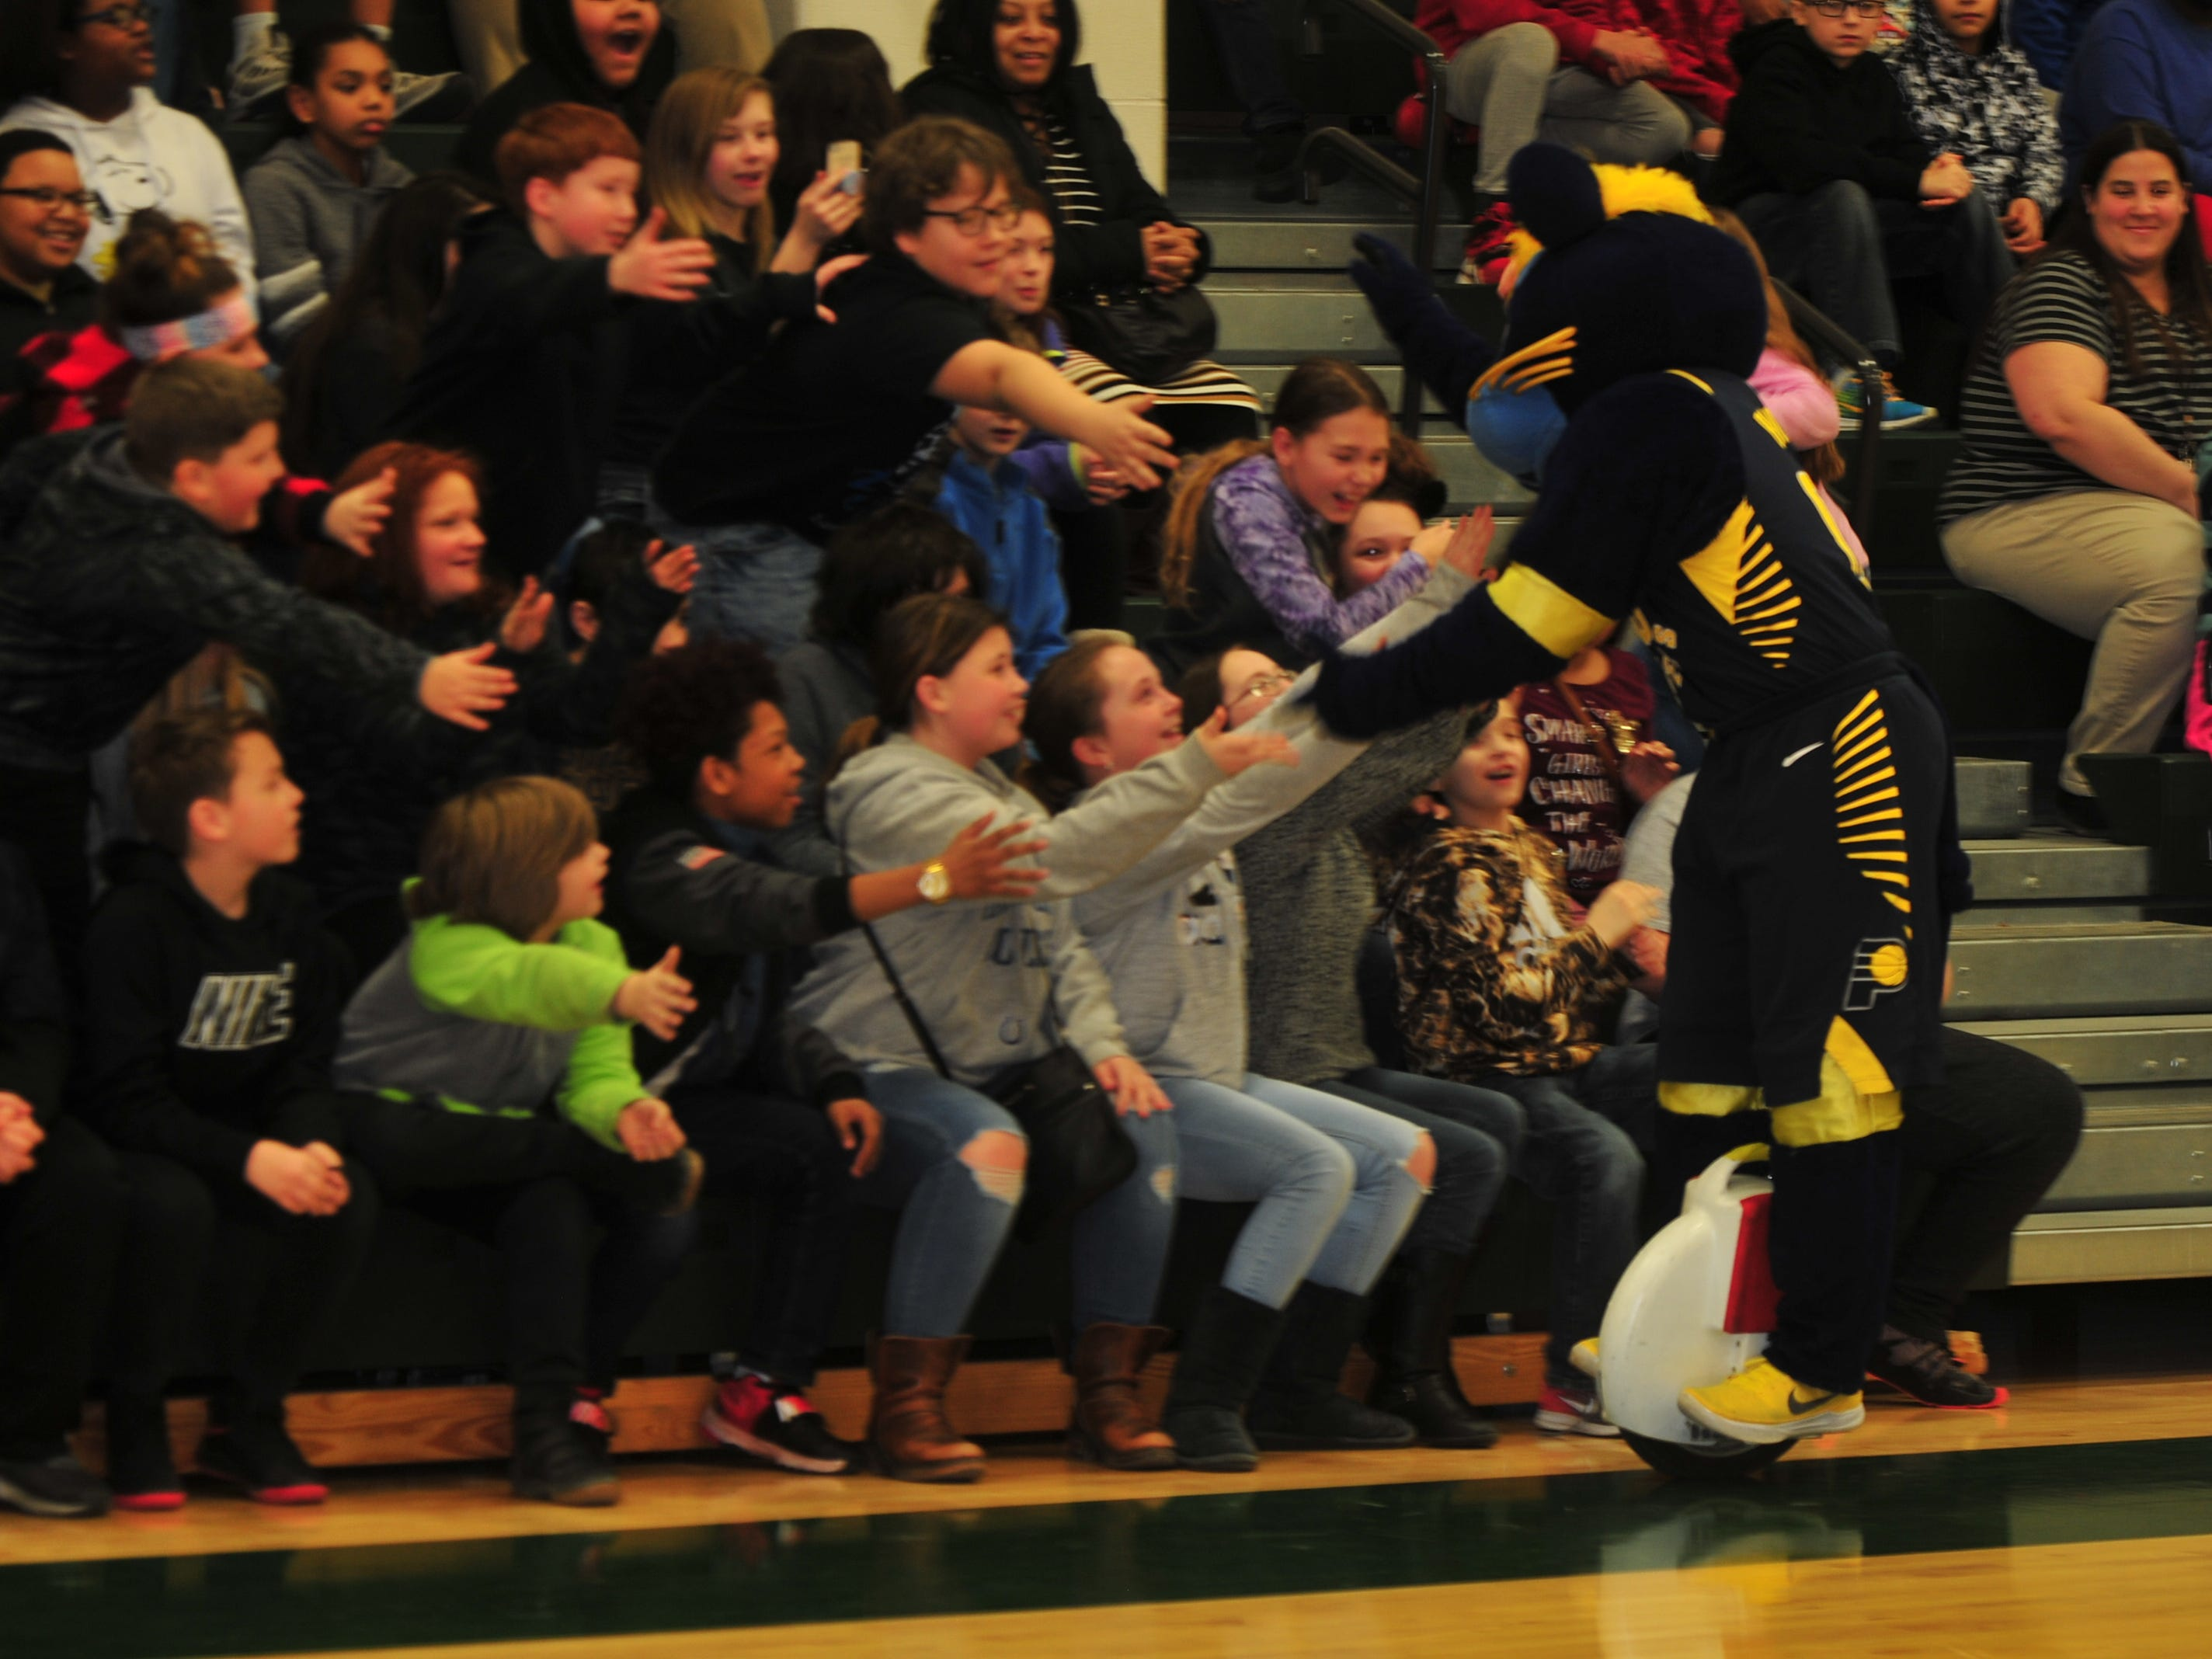 Dennis Intermediate School students greet Boomer, mascot for the NBA's Indiana Pacers, on Wednesday.